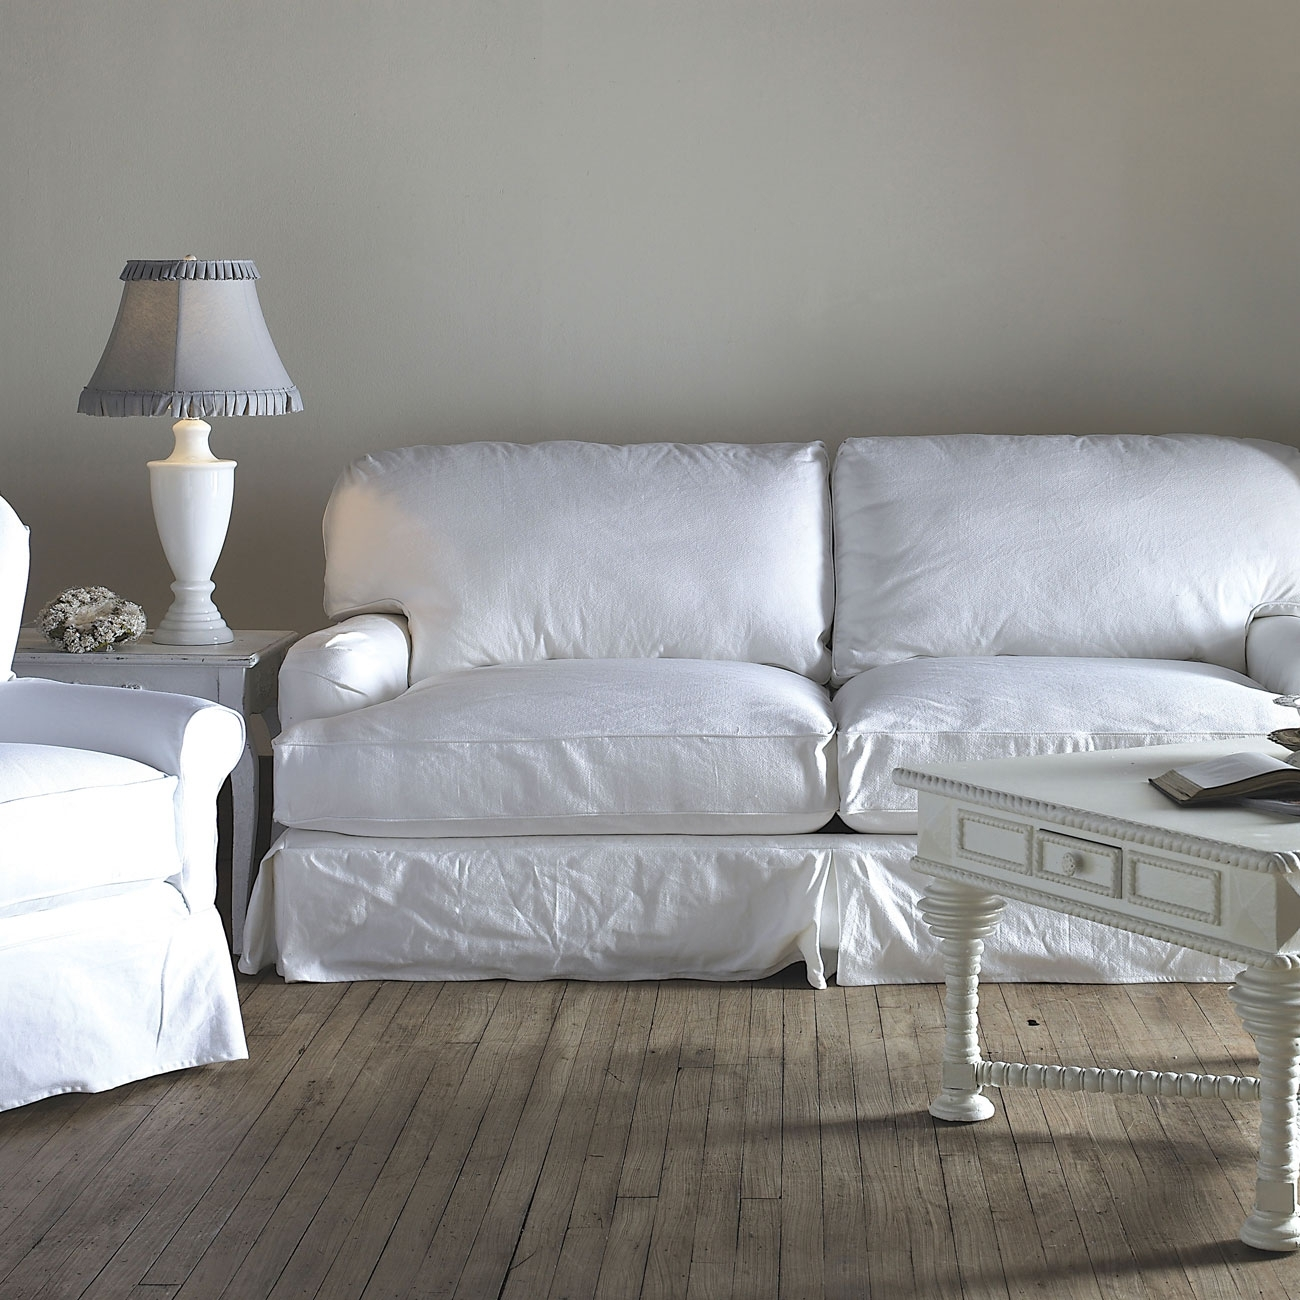 25 Cozy Shabby Chic Furniture Ideas For Your Home | Top Home Designs With Regard To Shabby Chic Sofas (View 8 of 10)